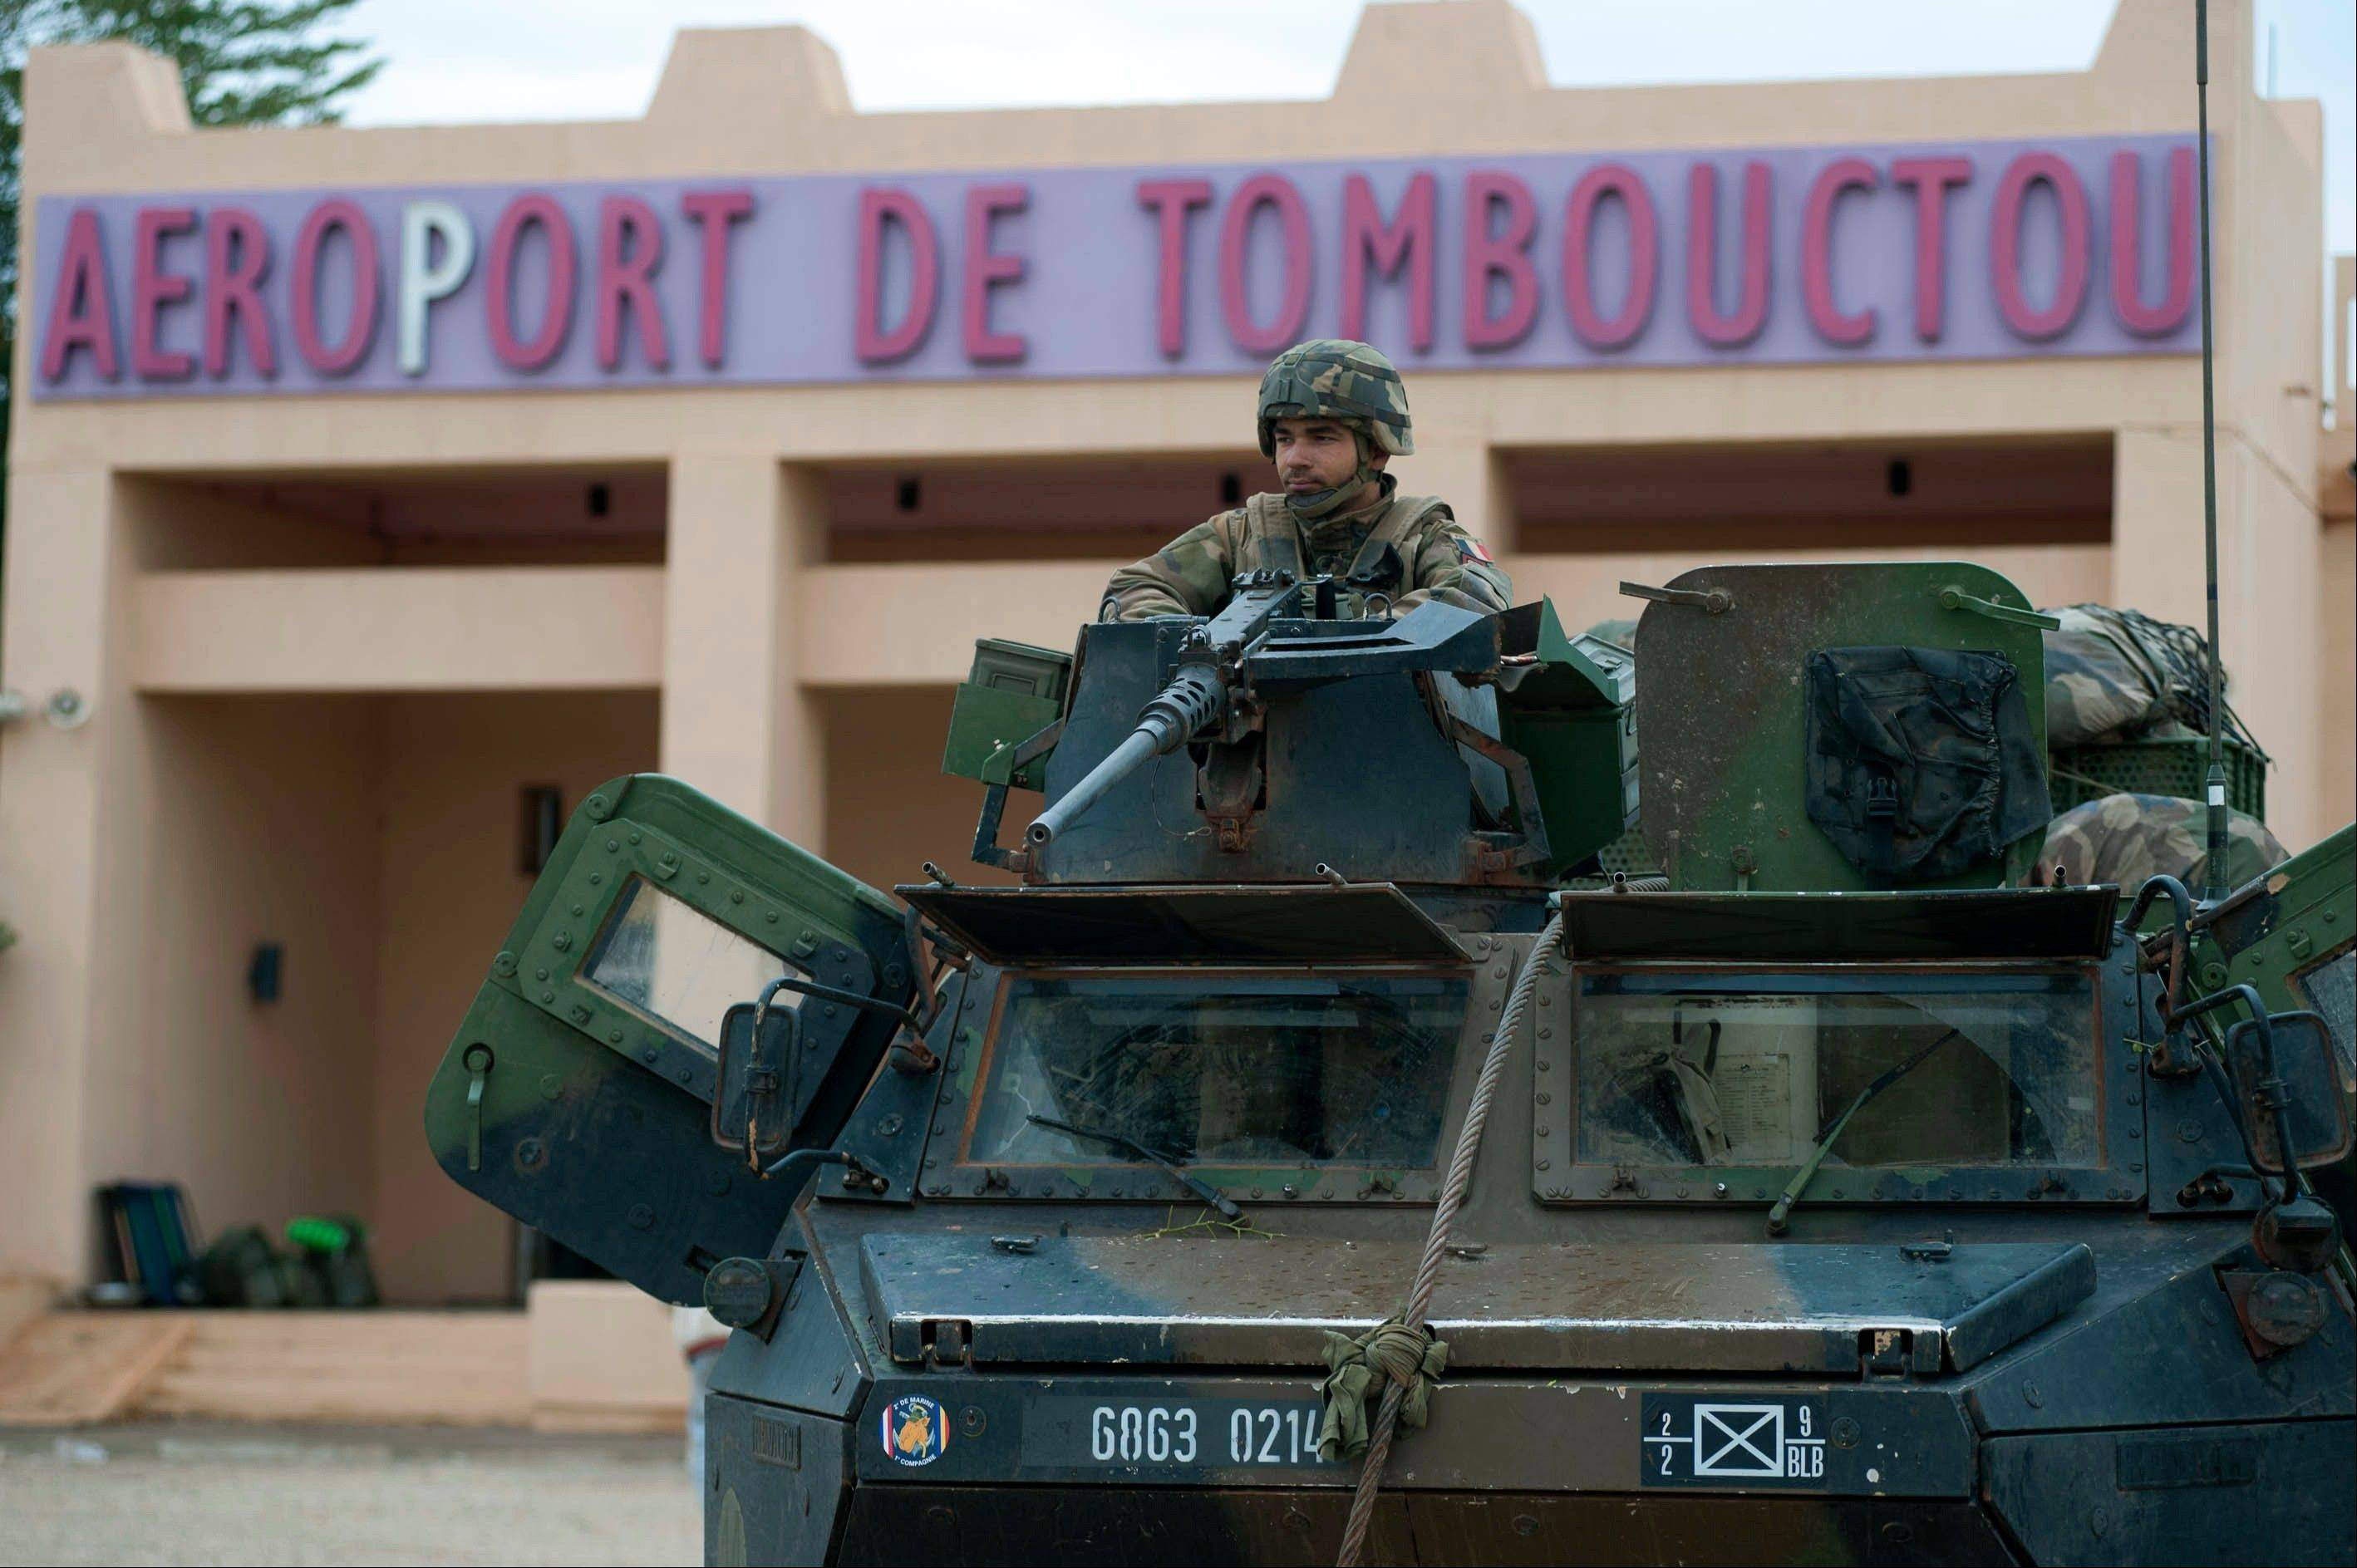 A French soldier guards the Timbuktu airport, in northern Mali. Backed by French helicopters and paratroopers, Malian soldiers entered the fabled city of Timbuktu on Monday after al-Qaida-linked militants who ruled the outpost by fear for nearly 10 months fled into the desert, setting fire to a library that held thousands of manuscripts dating to the Middle Ages.